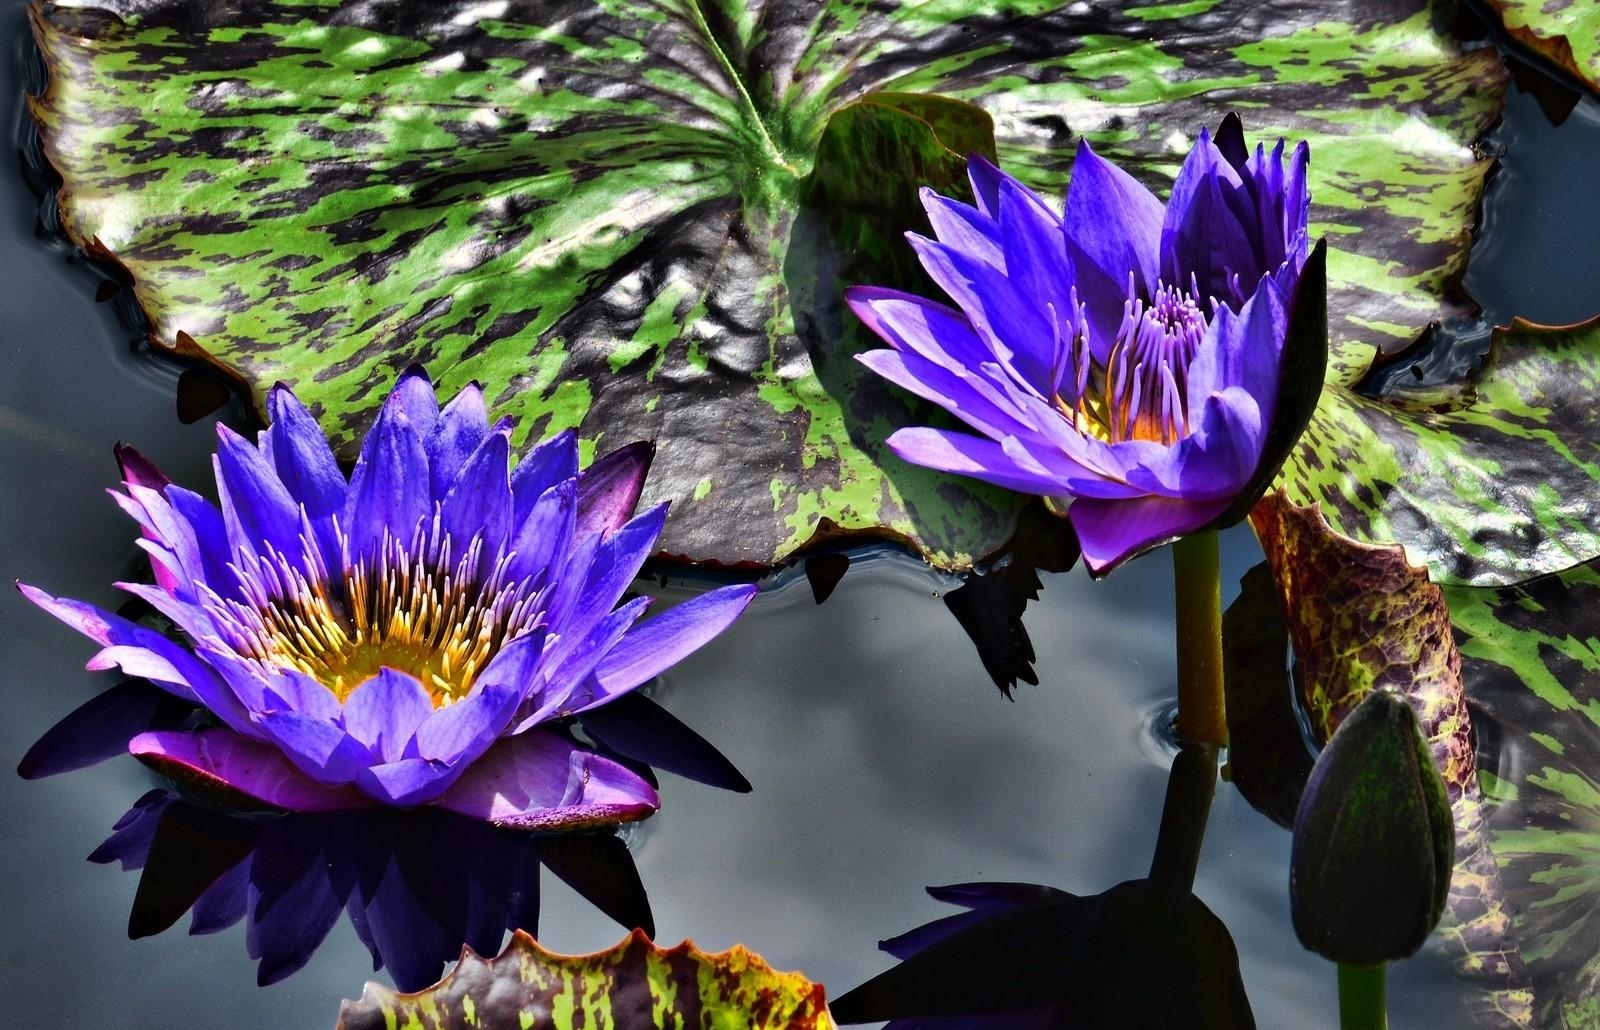 57270 download wallpaper Flowers, Water Lilies, Lilac, Purple, Couple, Pair, Water, Leaves screensavers and pictures for free